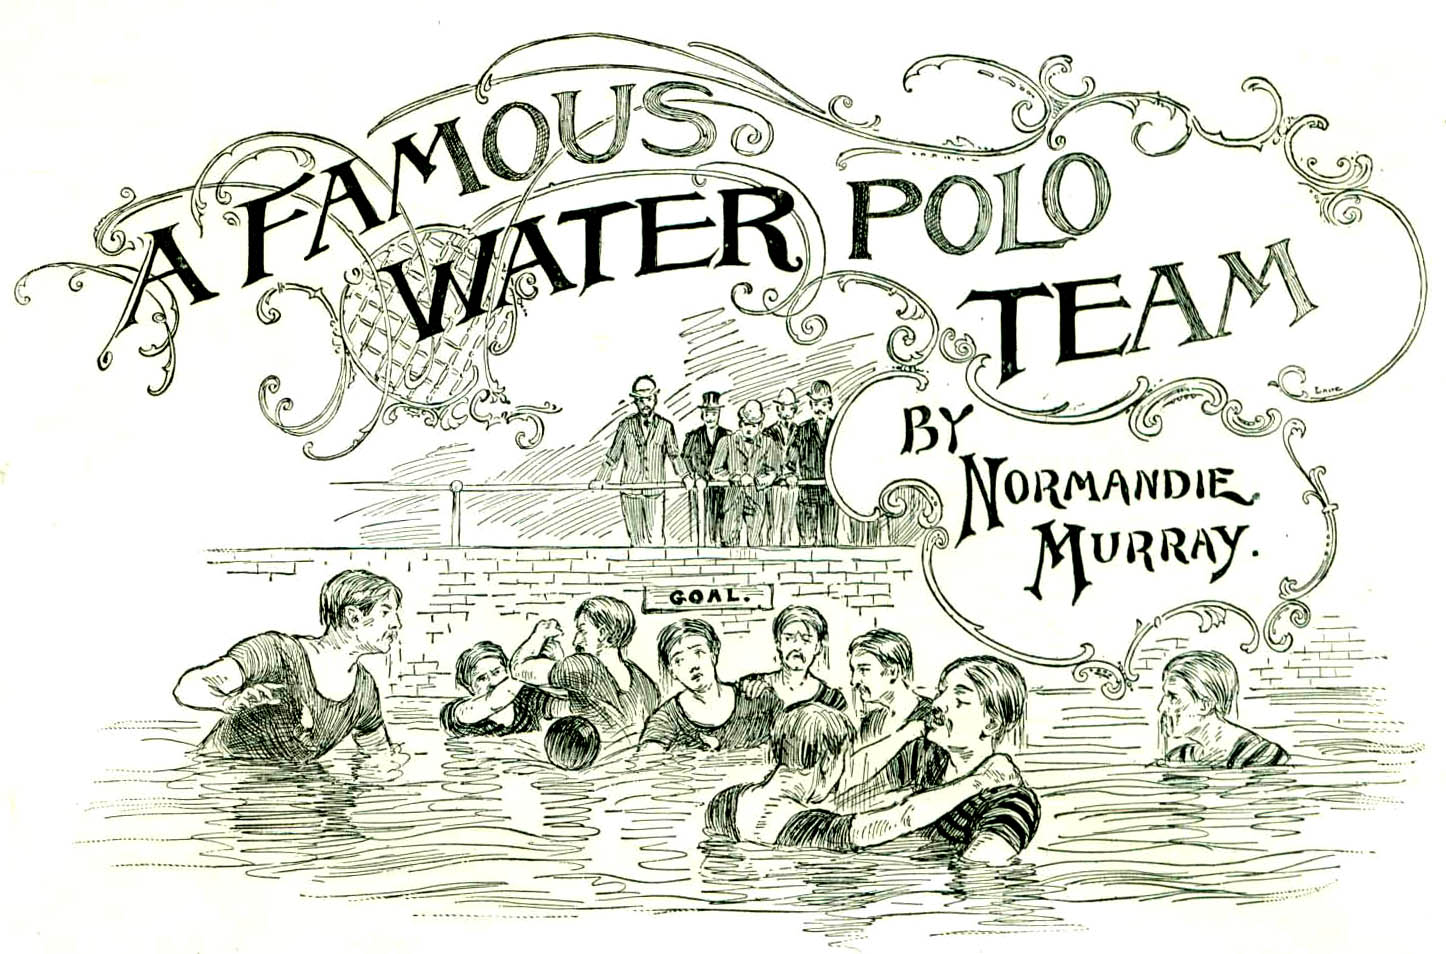 1446x954 Water Polo Legends 1895 A Famous Water Polo Team .